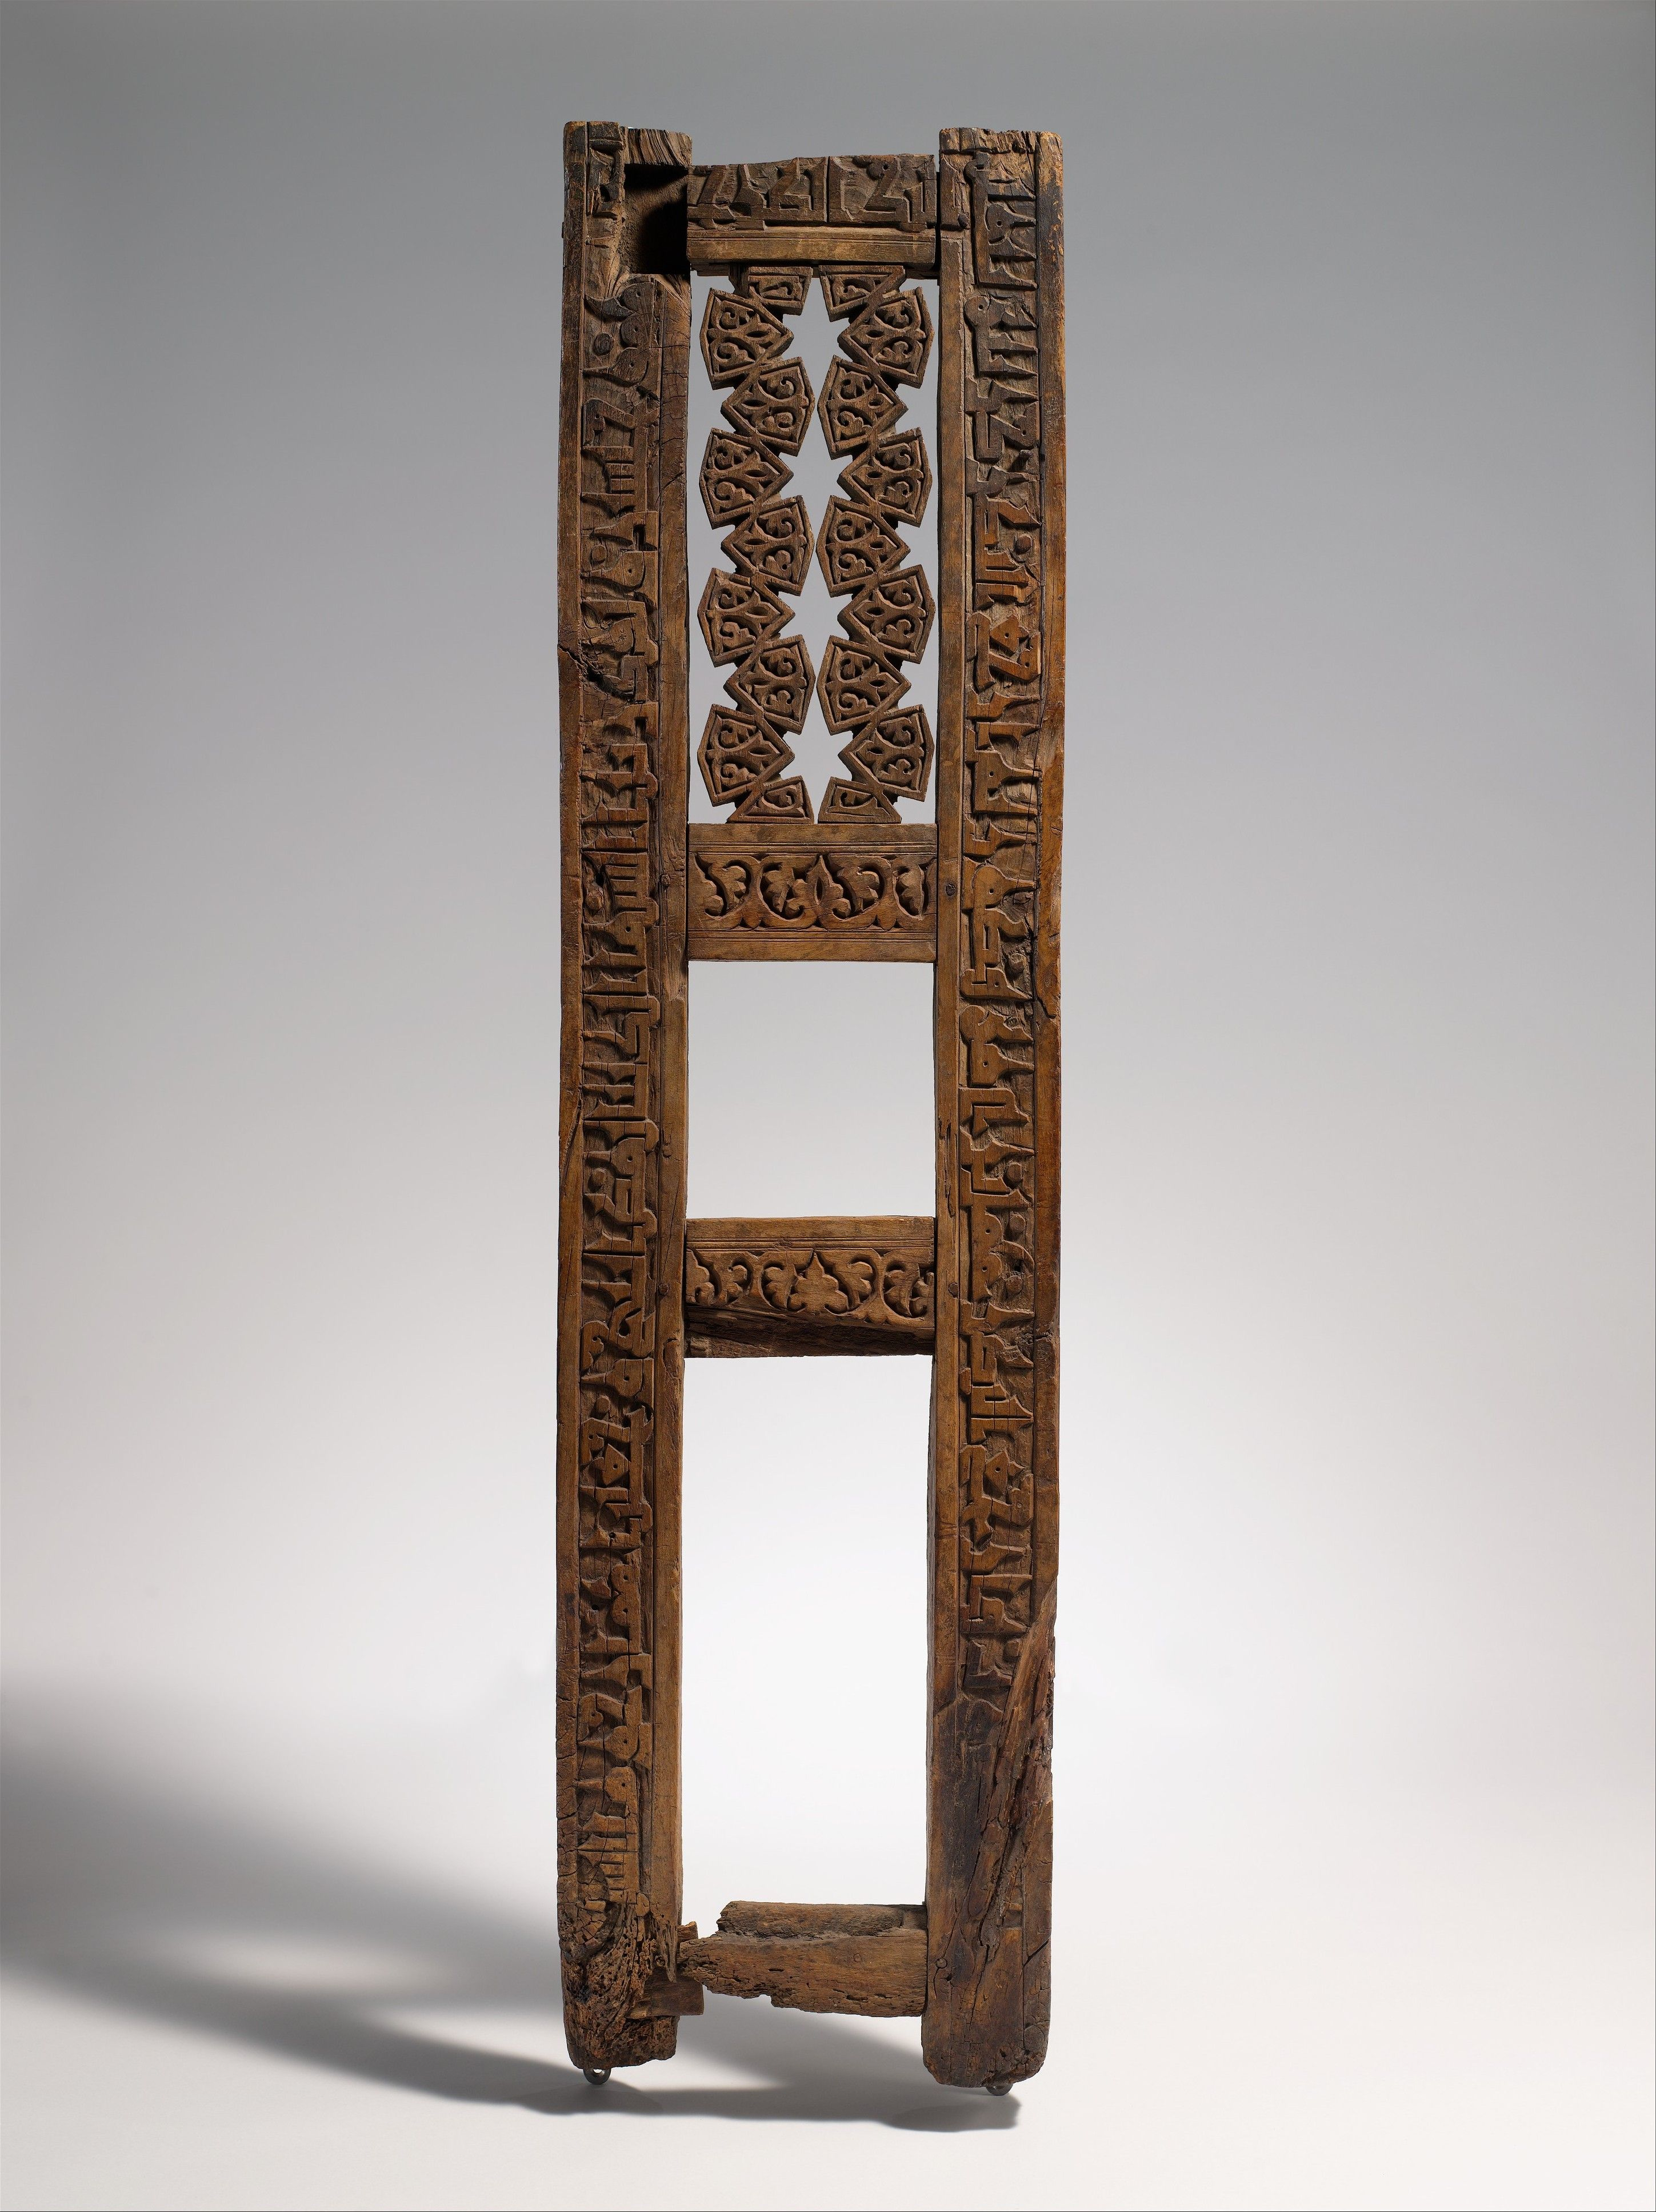 Fragment of a Pulpit | Islamic | The Metropolitan Museum of Art